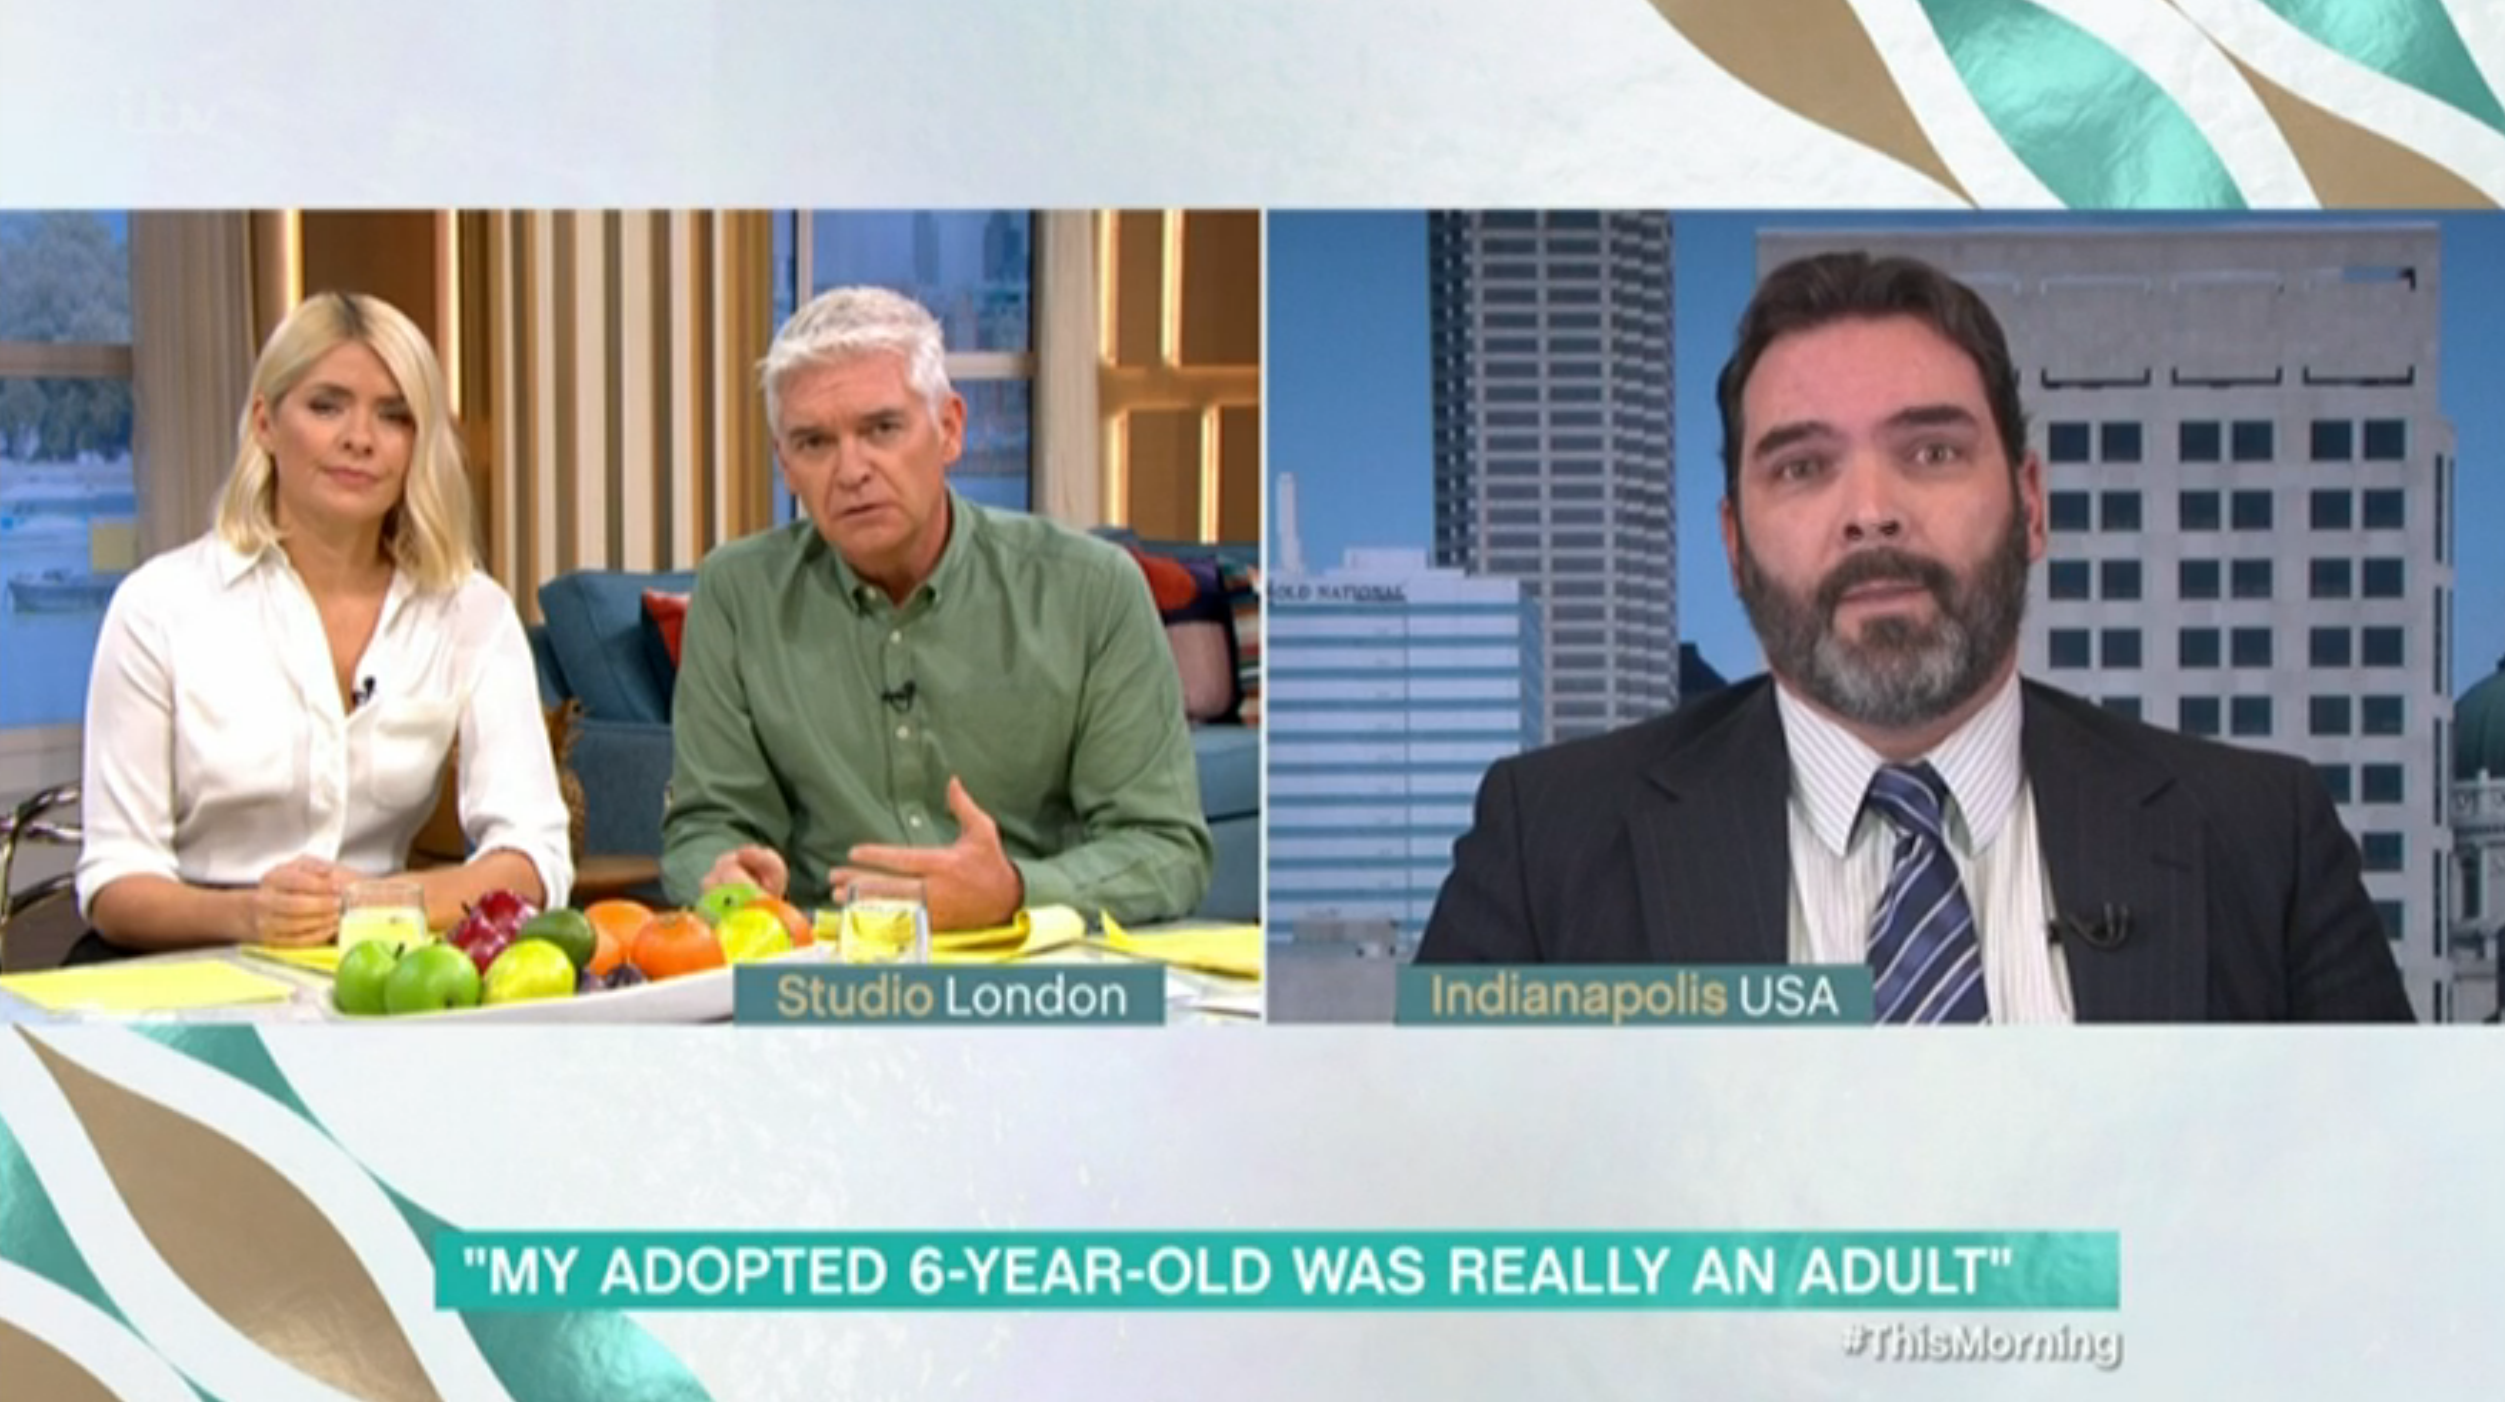 This Morning guest reveals six-year-old adopted girl was actually 22 and tried to kill him